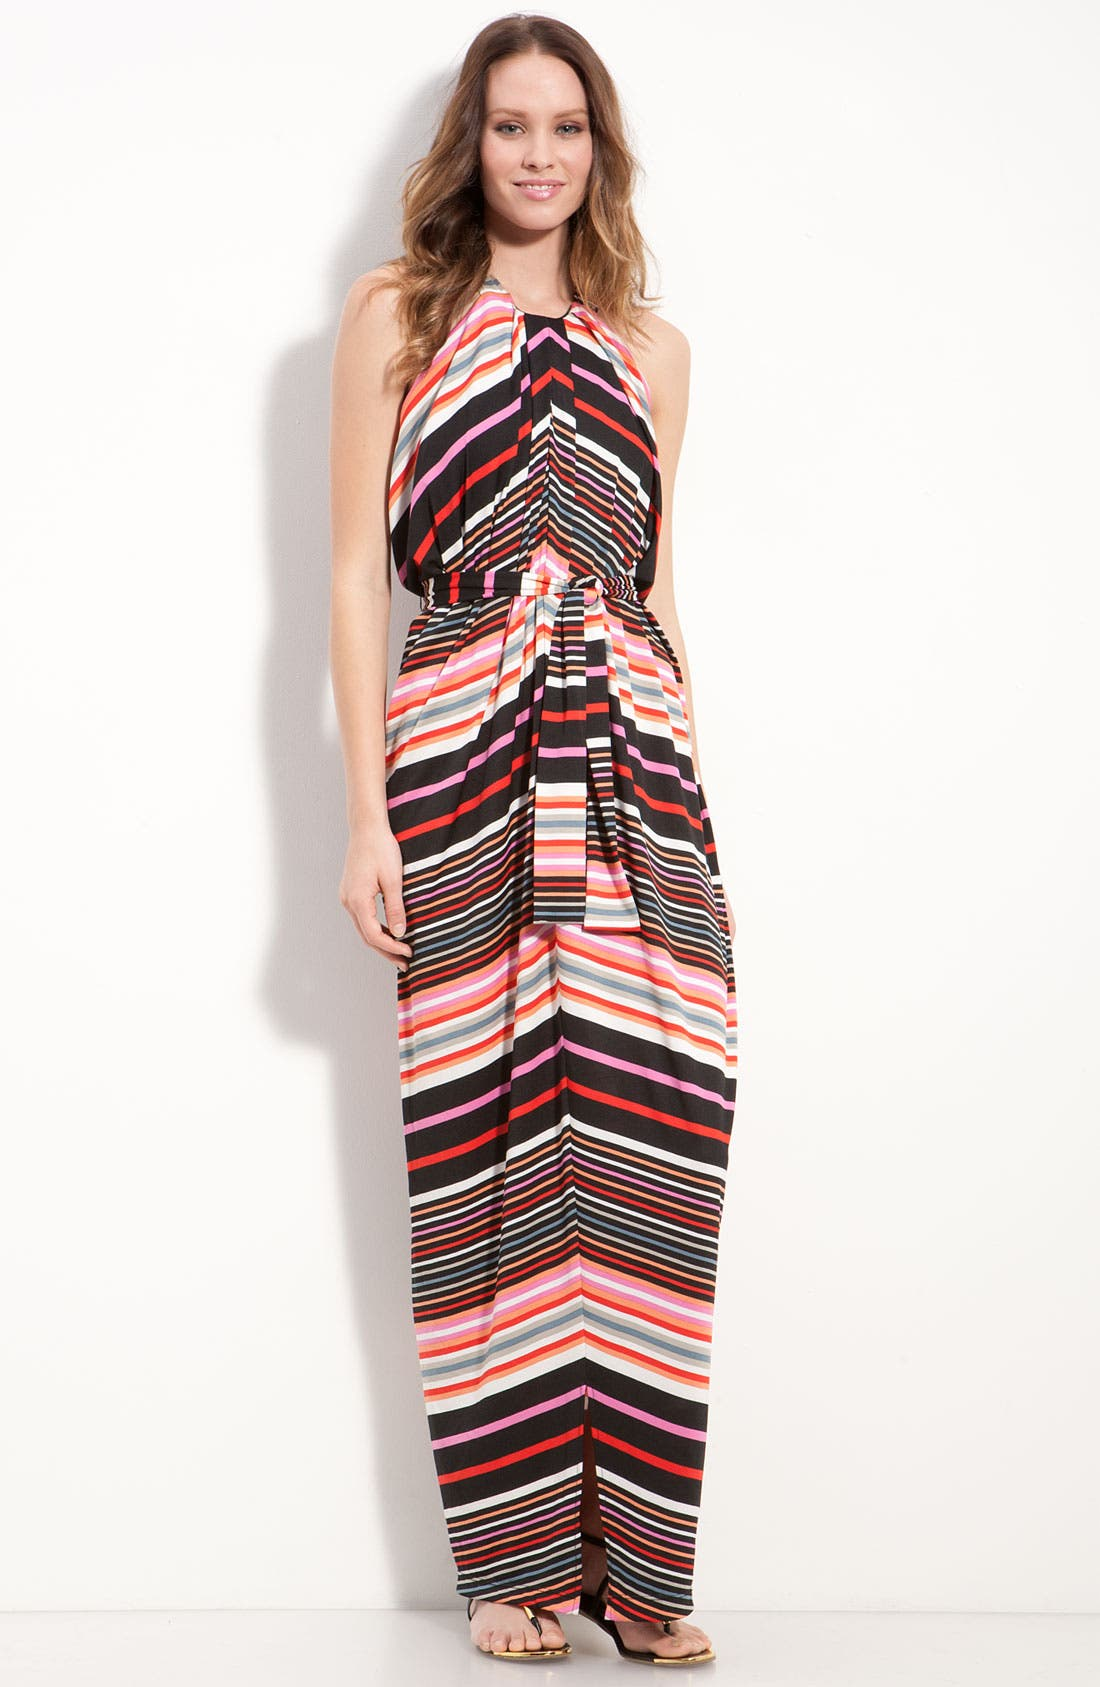 Alternate Image 1 Selected - Suzi Chin for Maggy Boutique Stripe Jersey Halter Dress